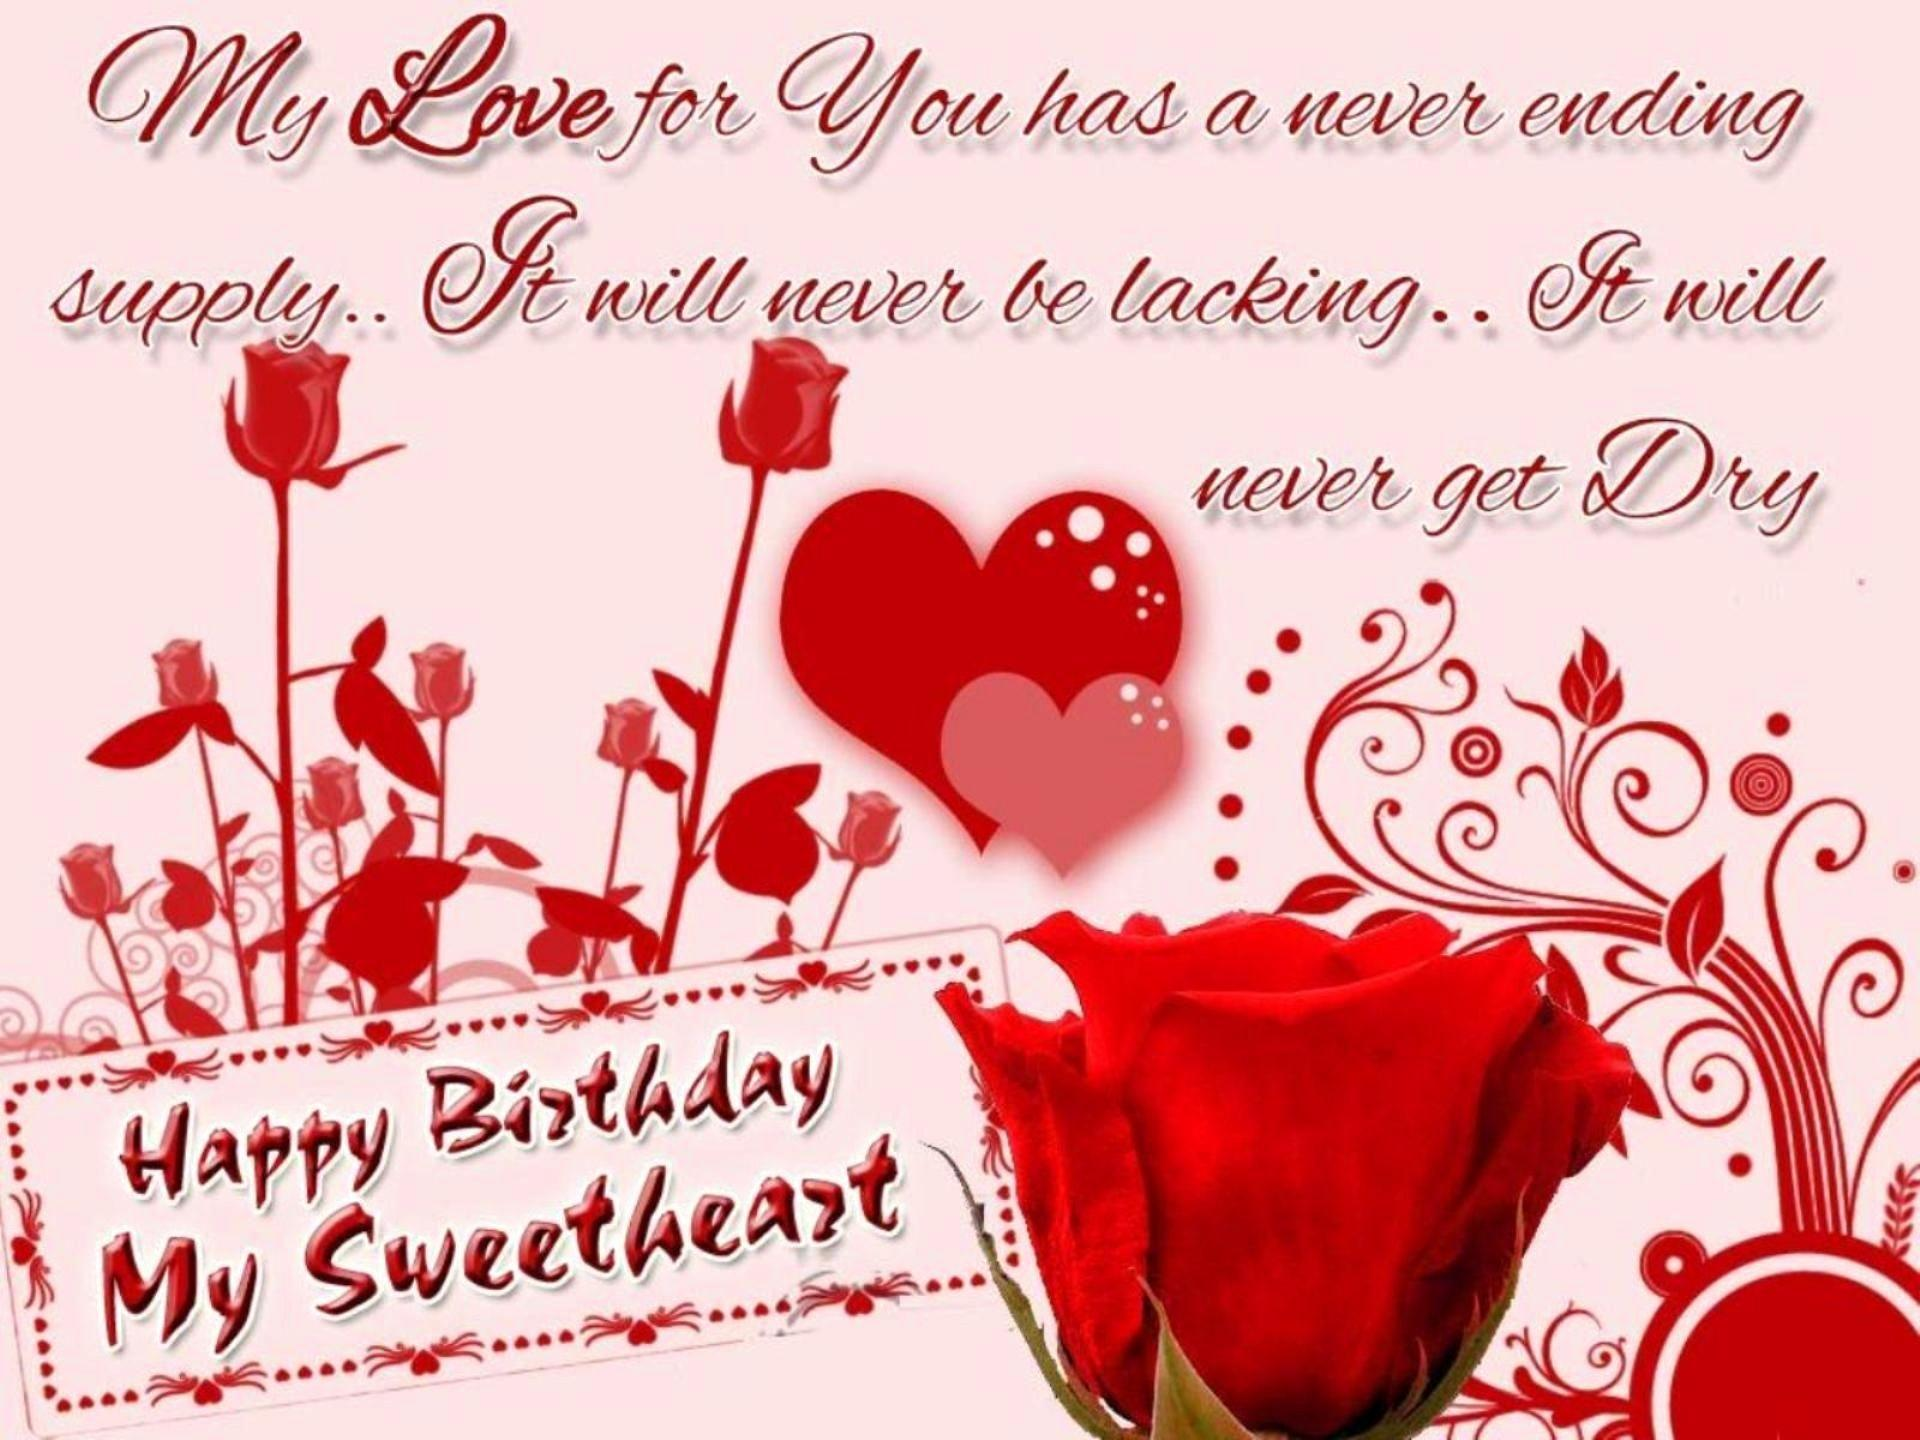 Happy Birthday My Love Wallpapers - Wallpaper Cave